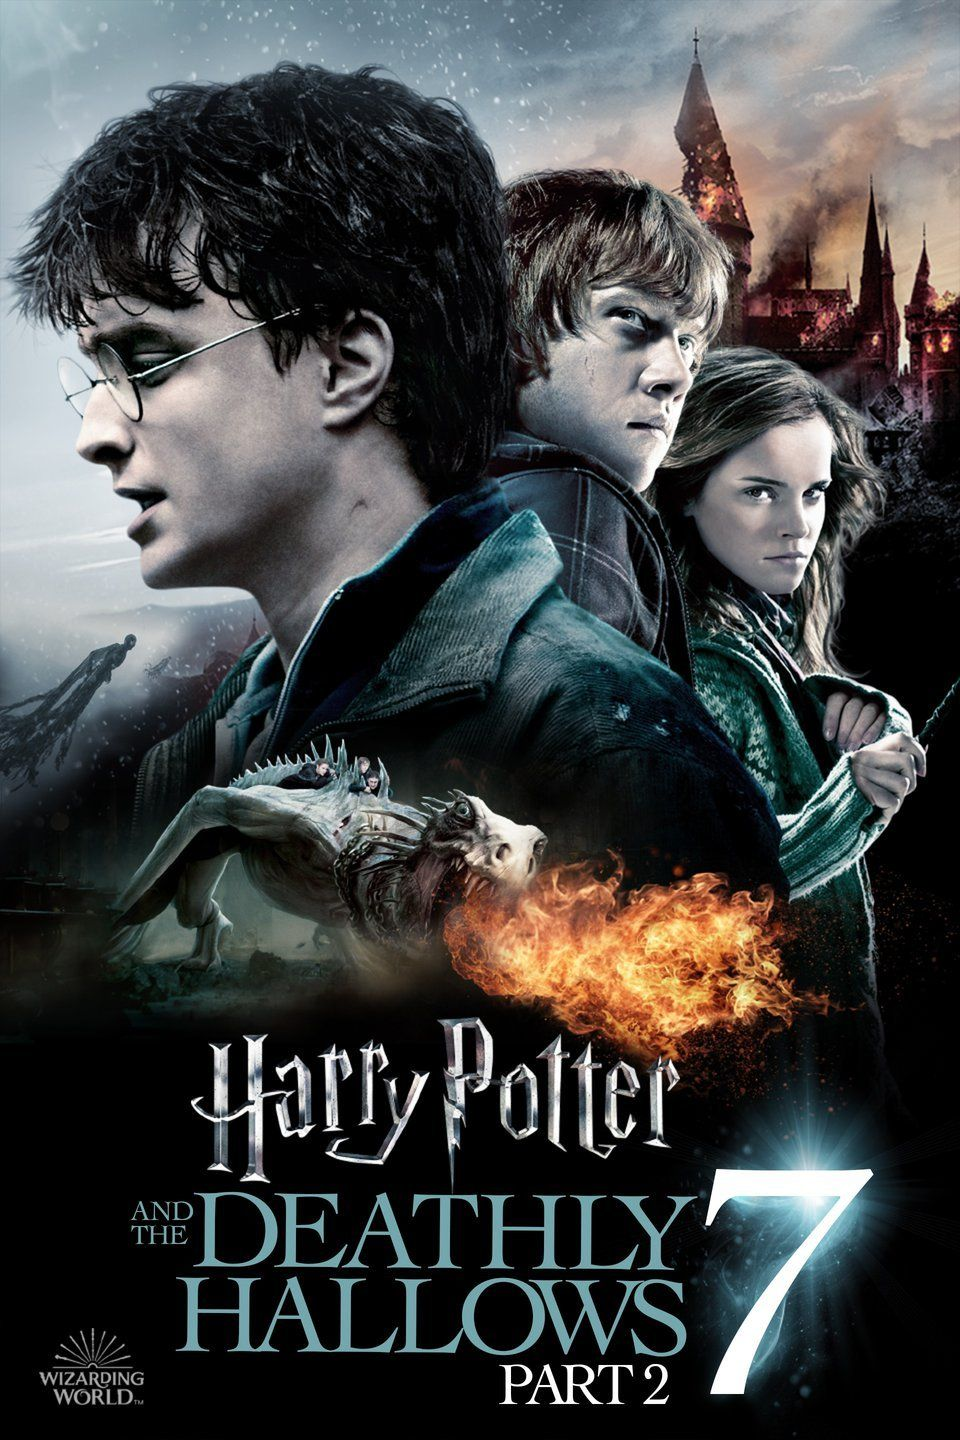 Harry Potter 7 Streaming Hd : harry, potter, streaming, Harry, Potter, Deathly, Hallows, (2011), Full,, Films